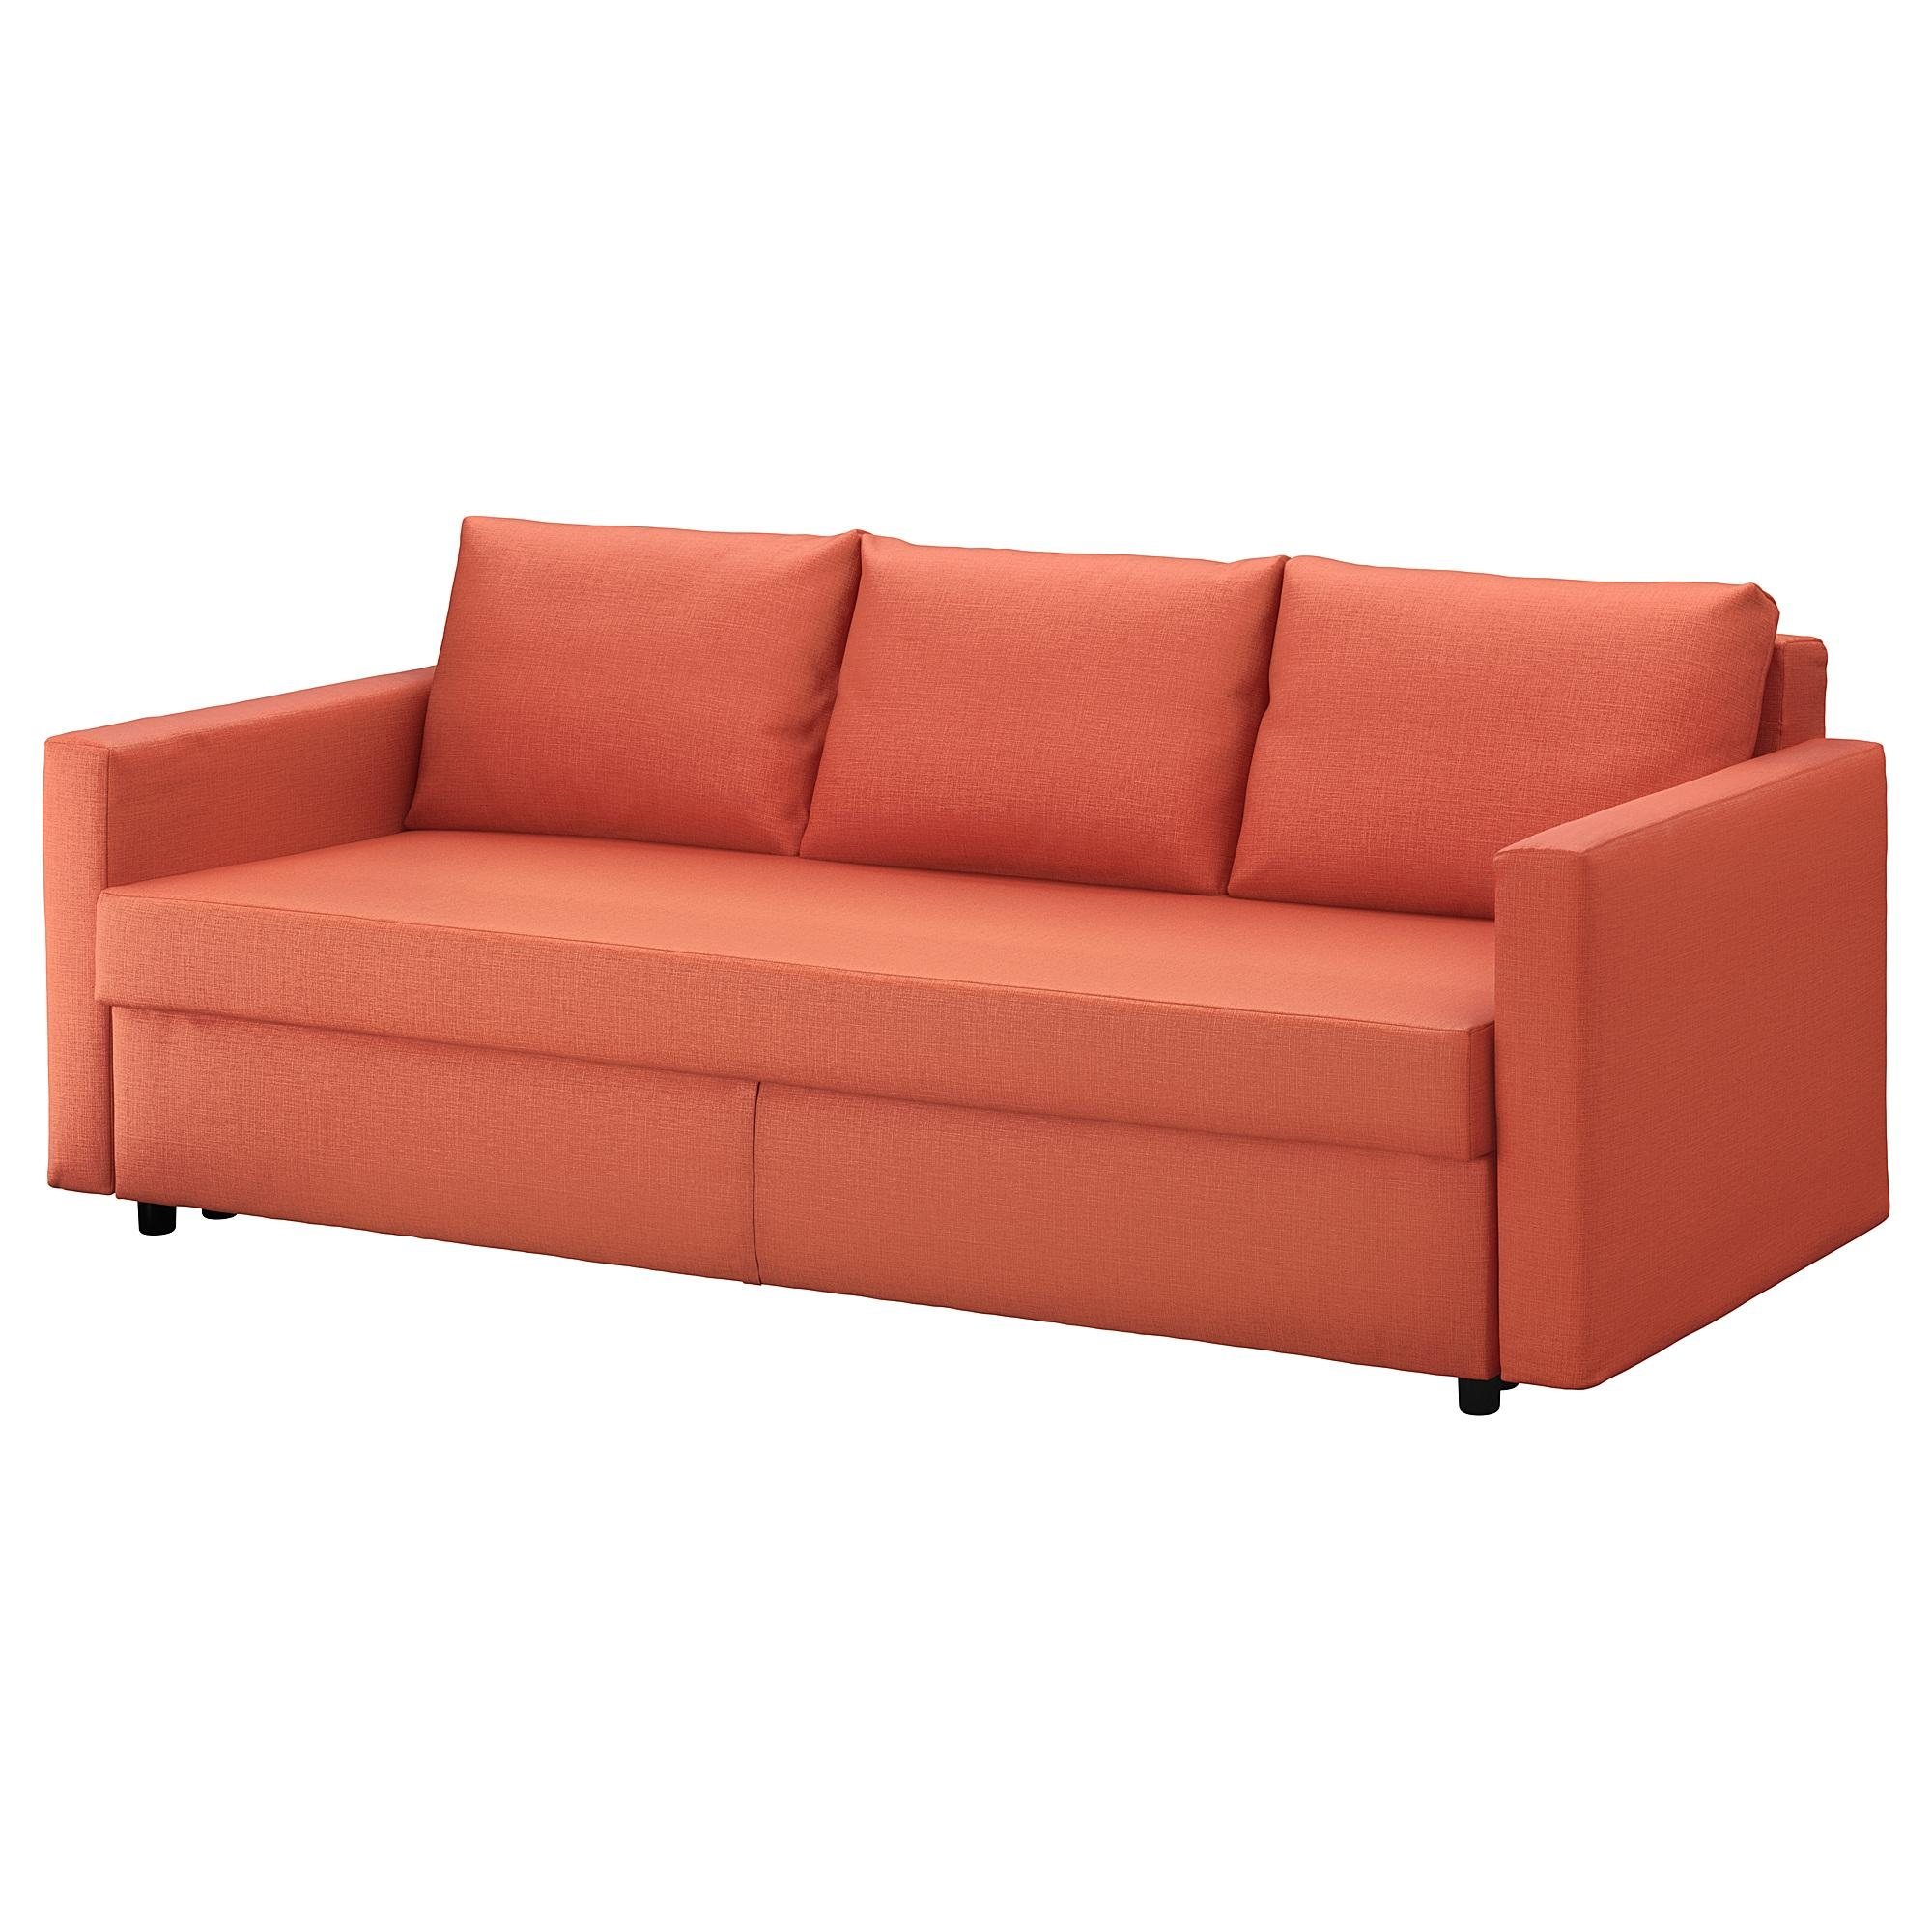 20 choices of red sofa beds ikea sofa ideas for Ikea divan